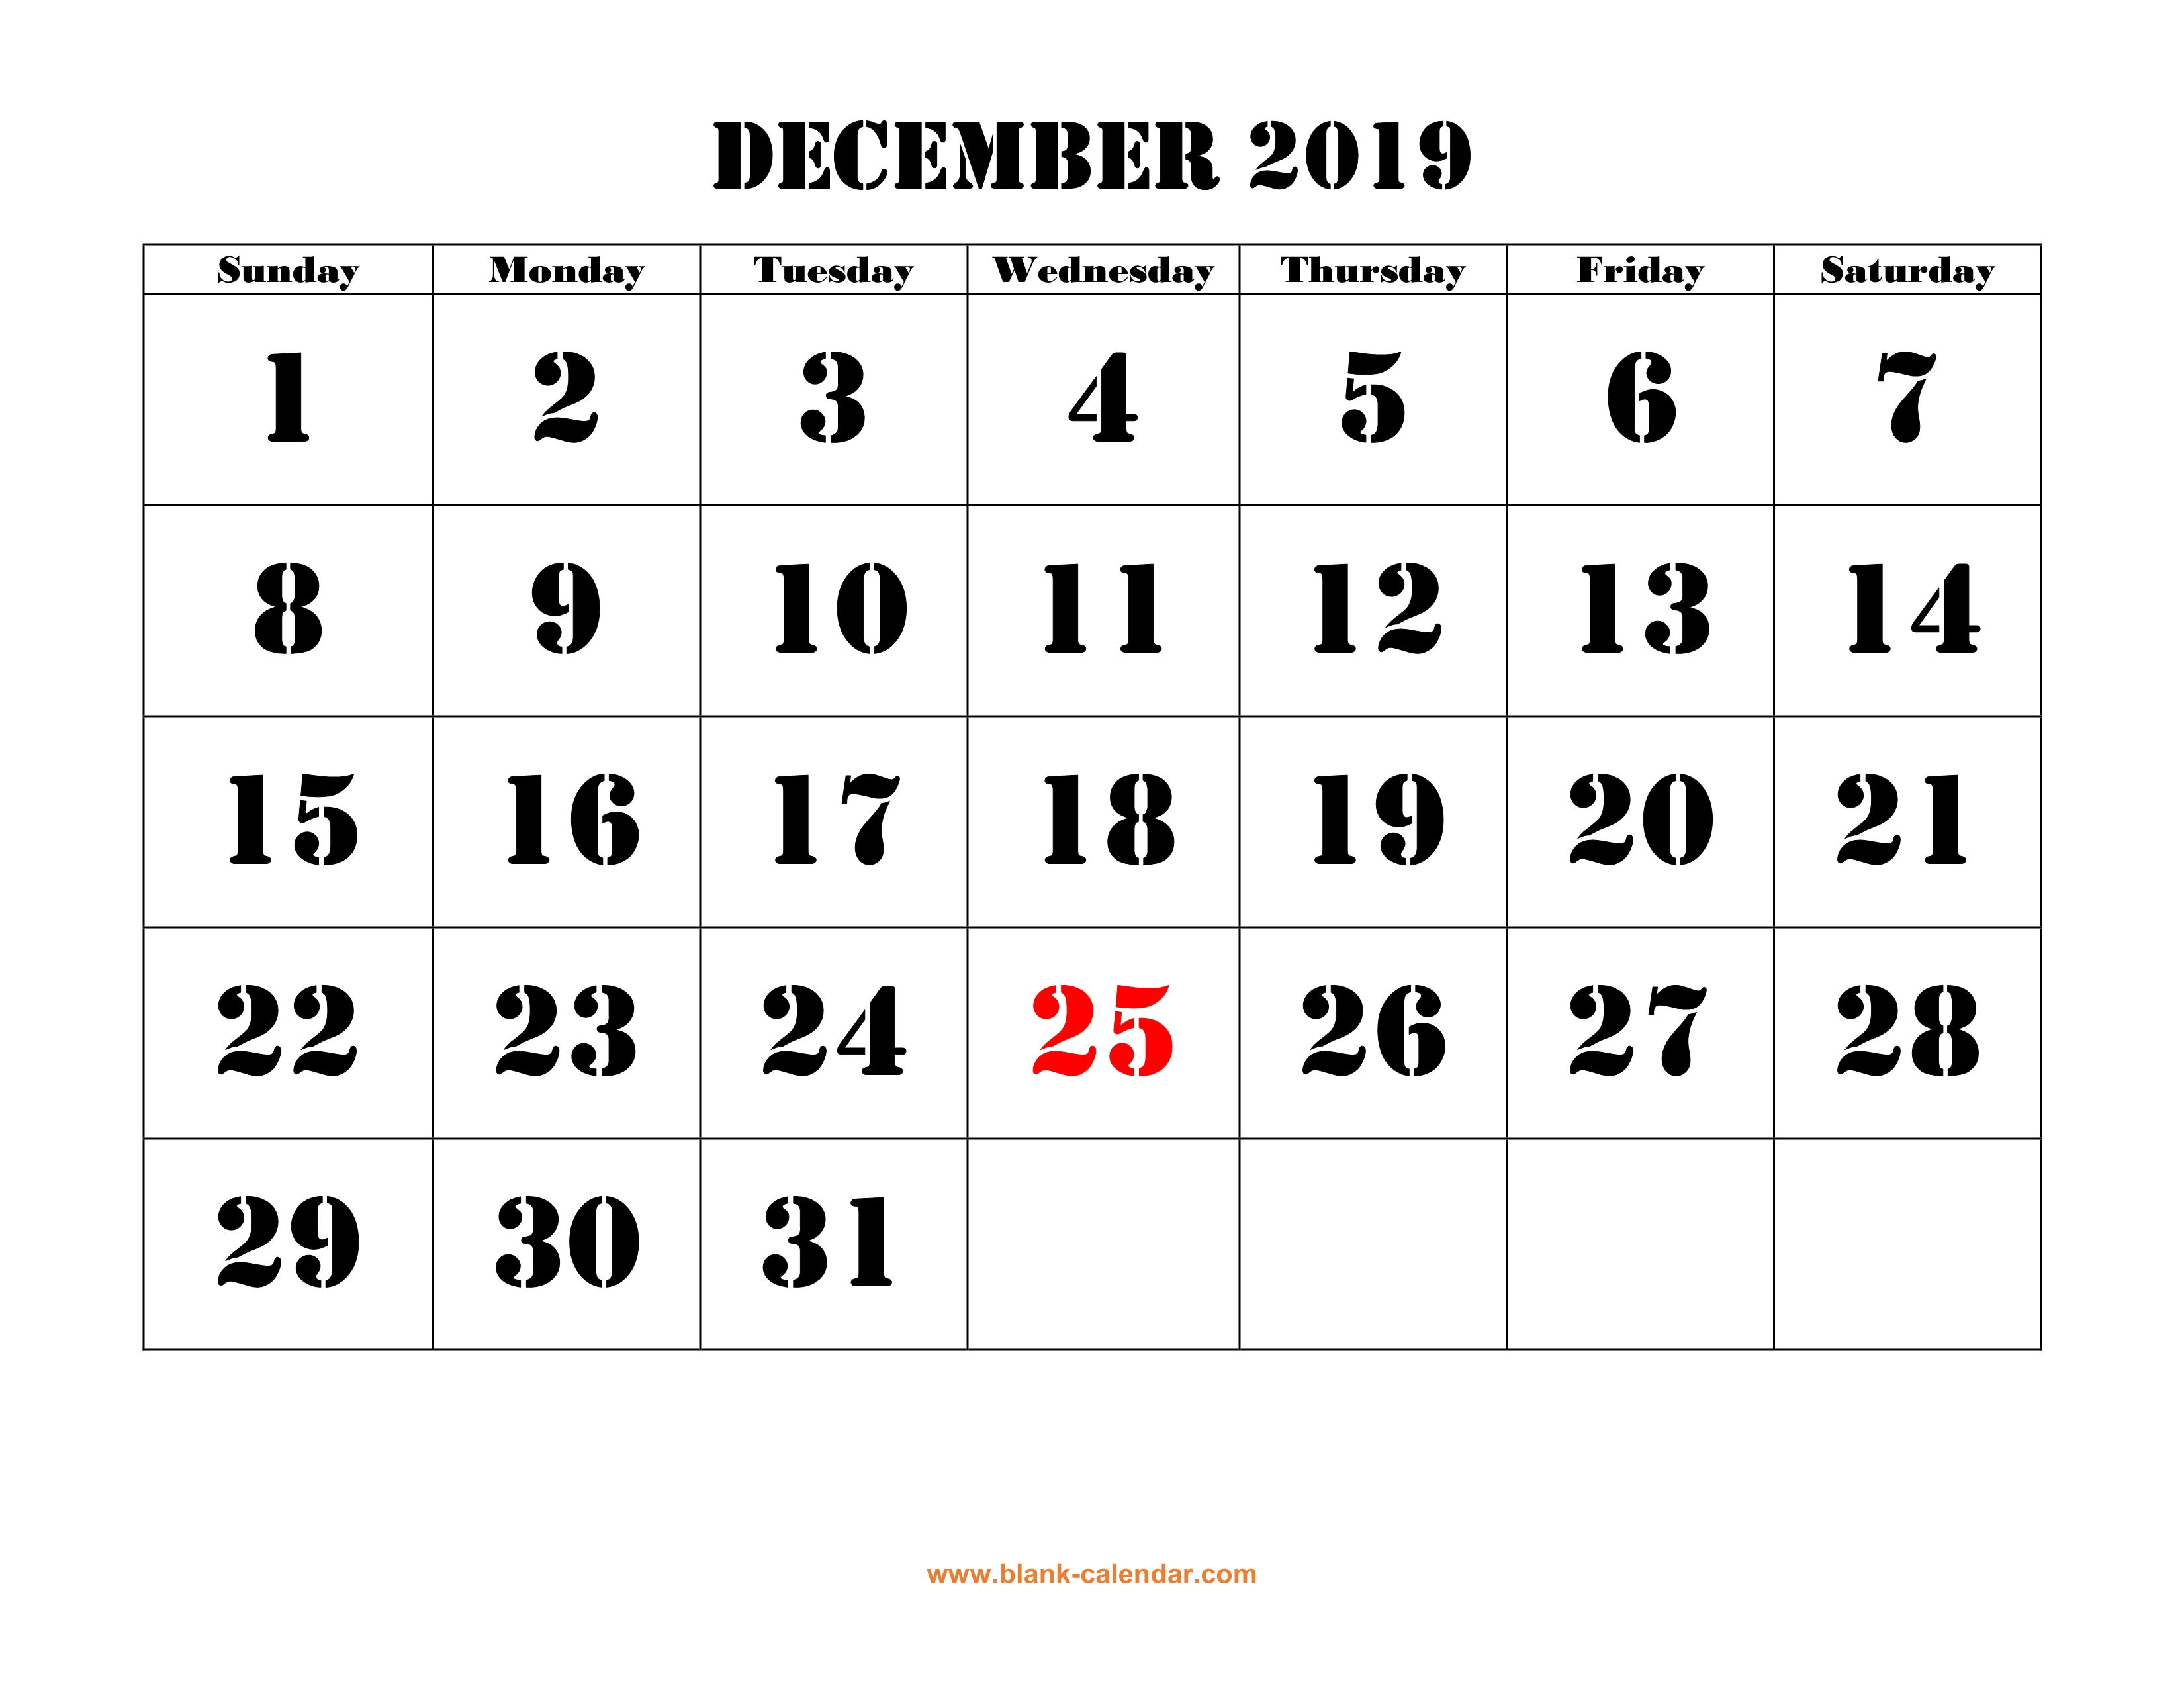 photo relating to Printable Calendar Dec identify December 2019 Printable Calendar Absolutely free Down load Regular monthly